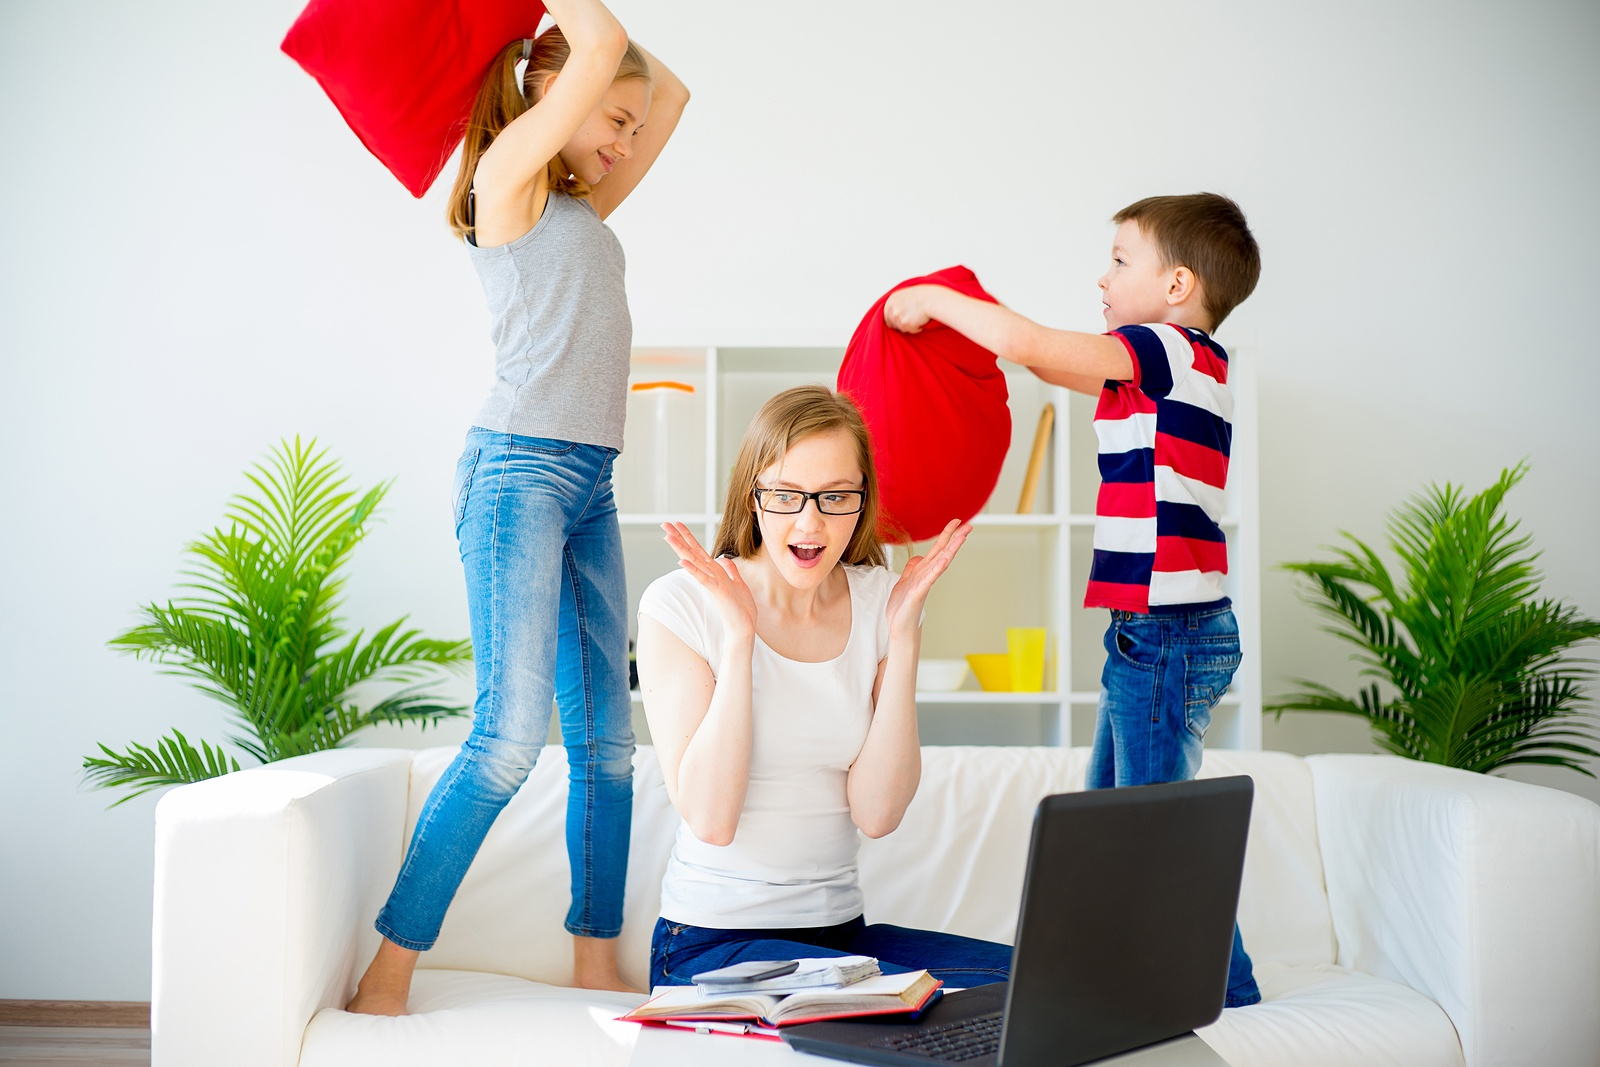 4 Best Ways Stay-At-Home Moms Can Beat Stress